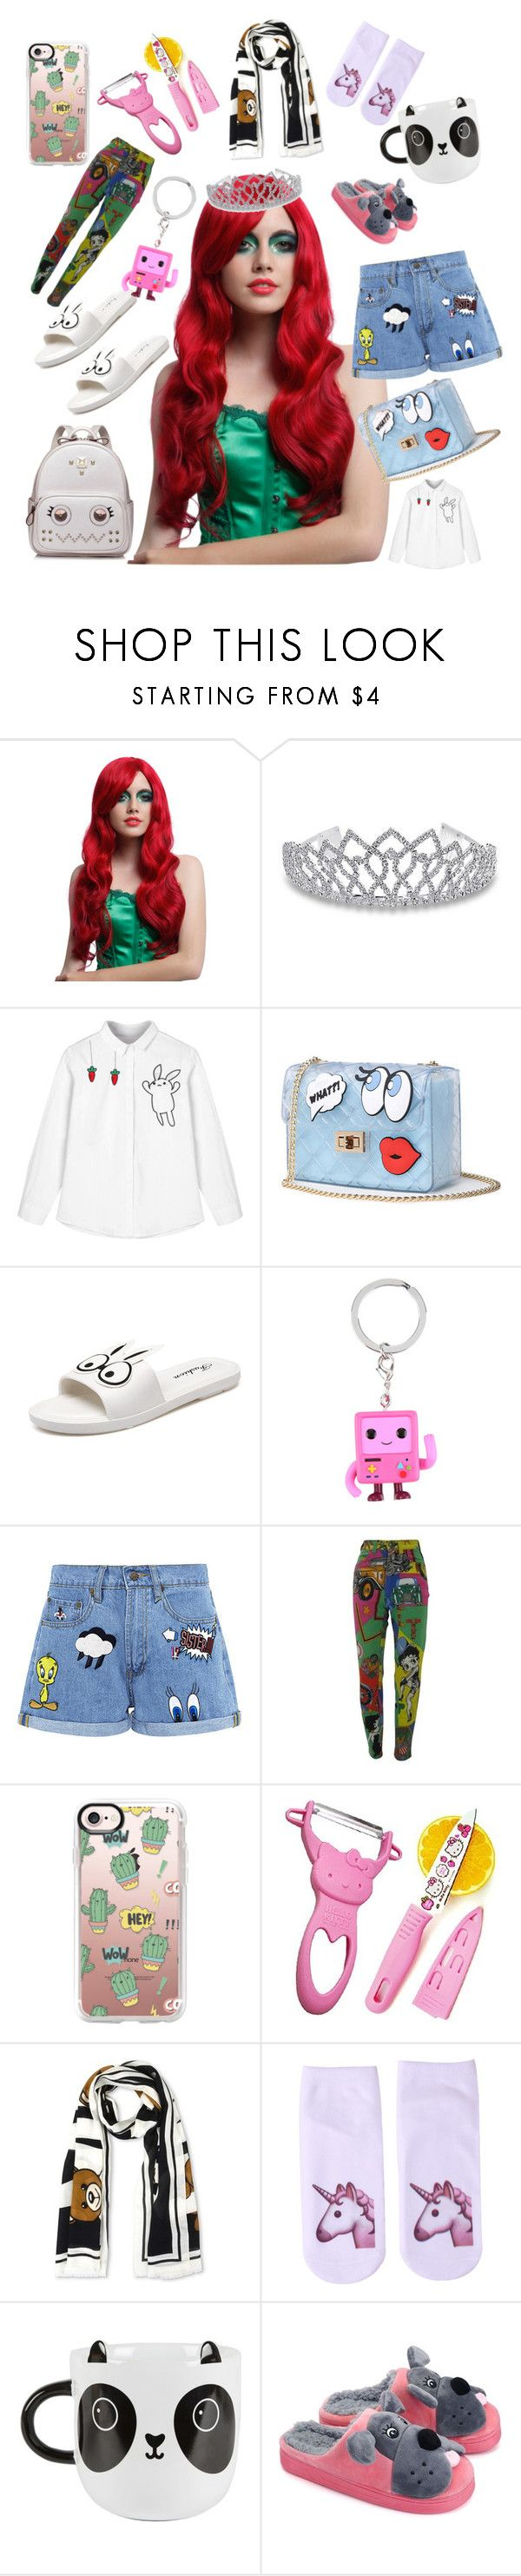 """Cartoon"" by heidihansen0505 on Polyvore featuring Hot Topic, Bling Jewelry, WithChic, Cartoon Network, Paul & Joe Sister, Versace, Casetify, Hello Kitty, Moschino and Sass & Belle"